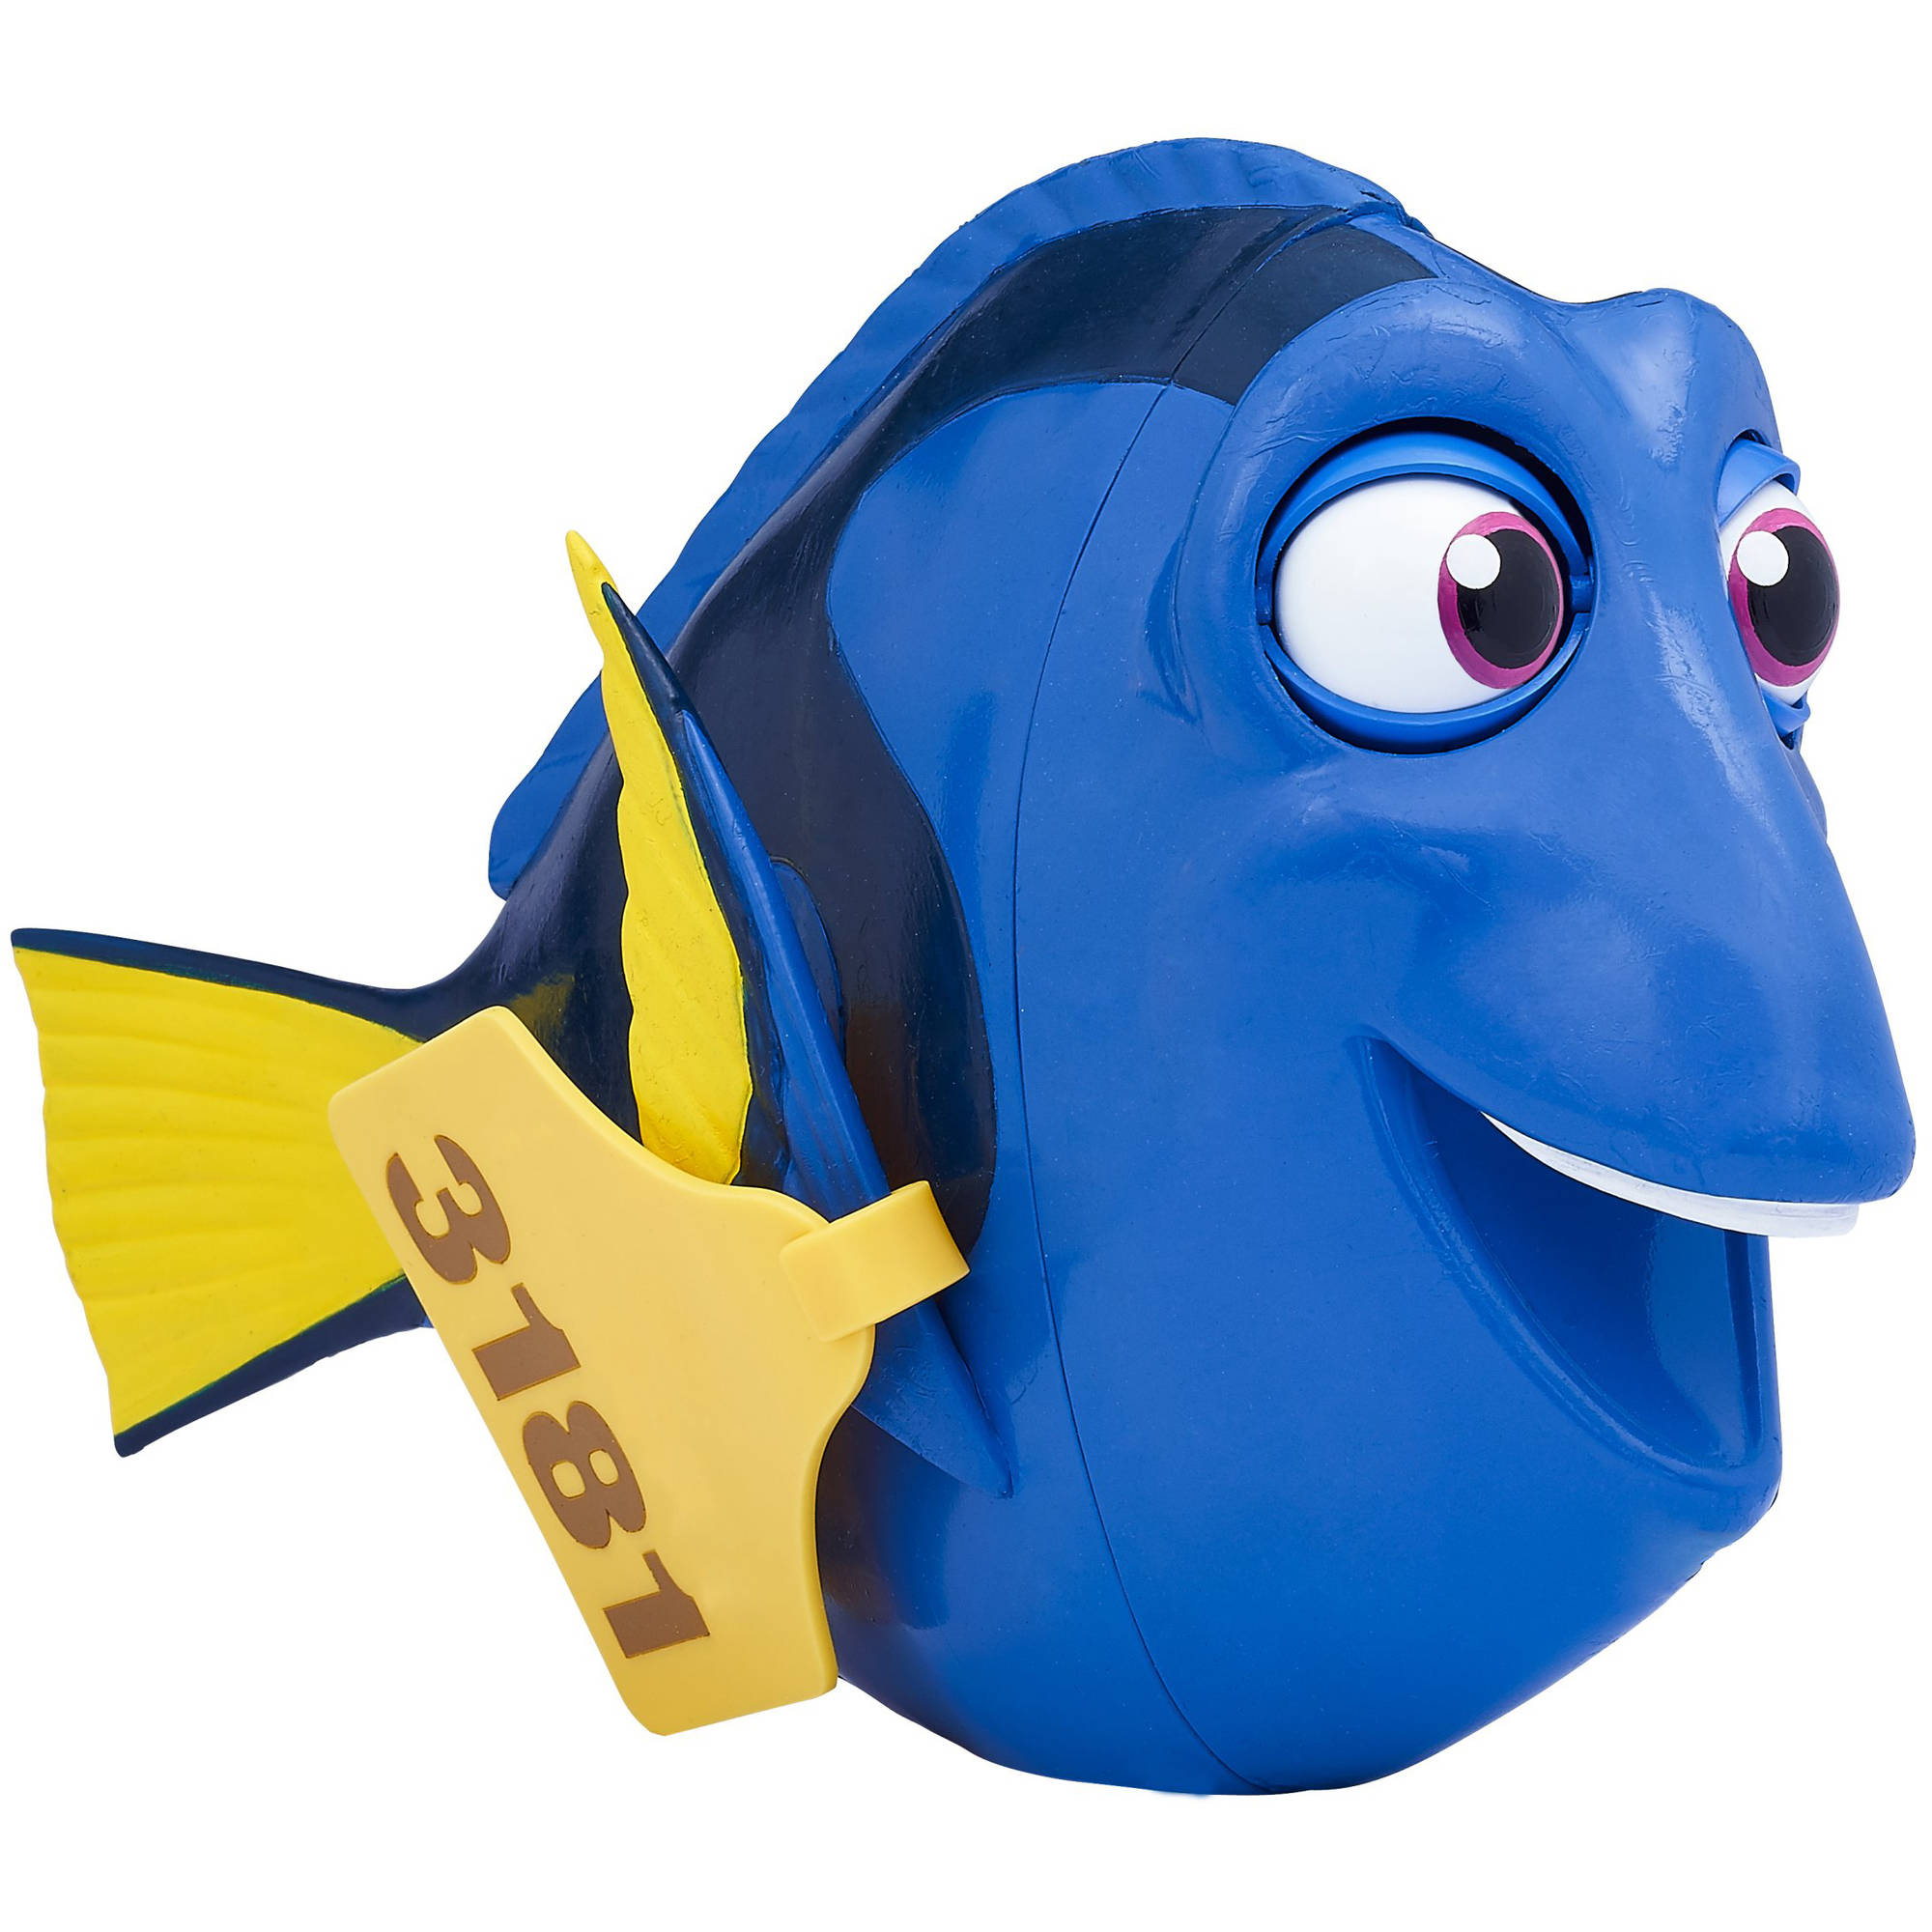 Disney Finding Dory My Friend Dory